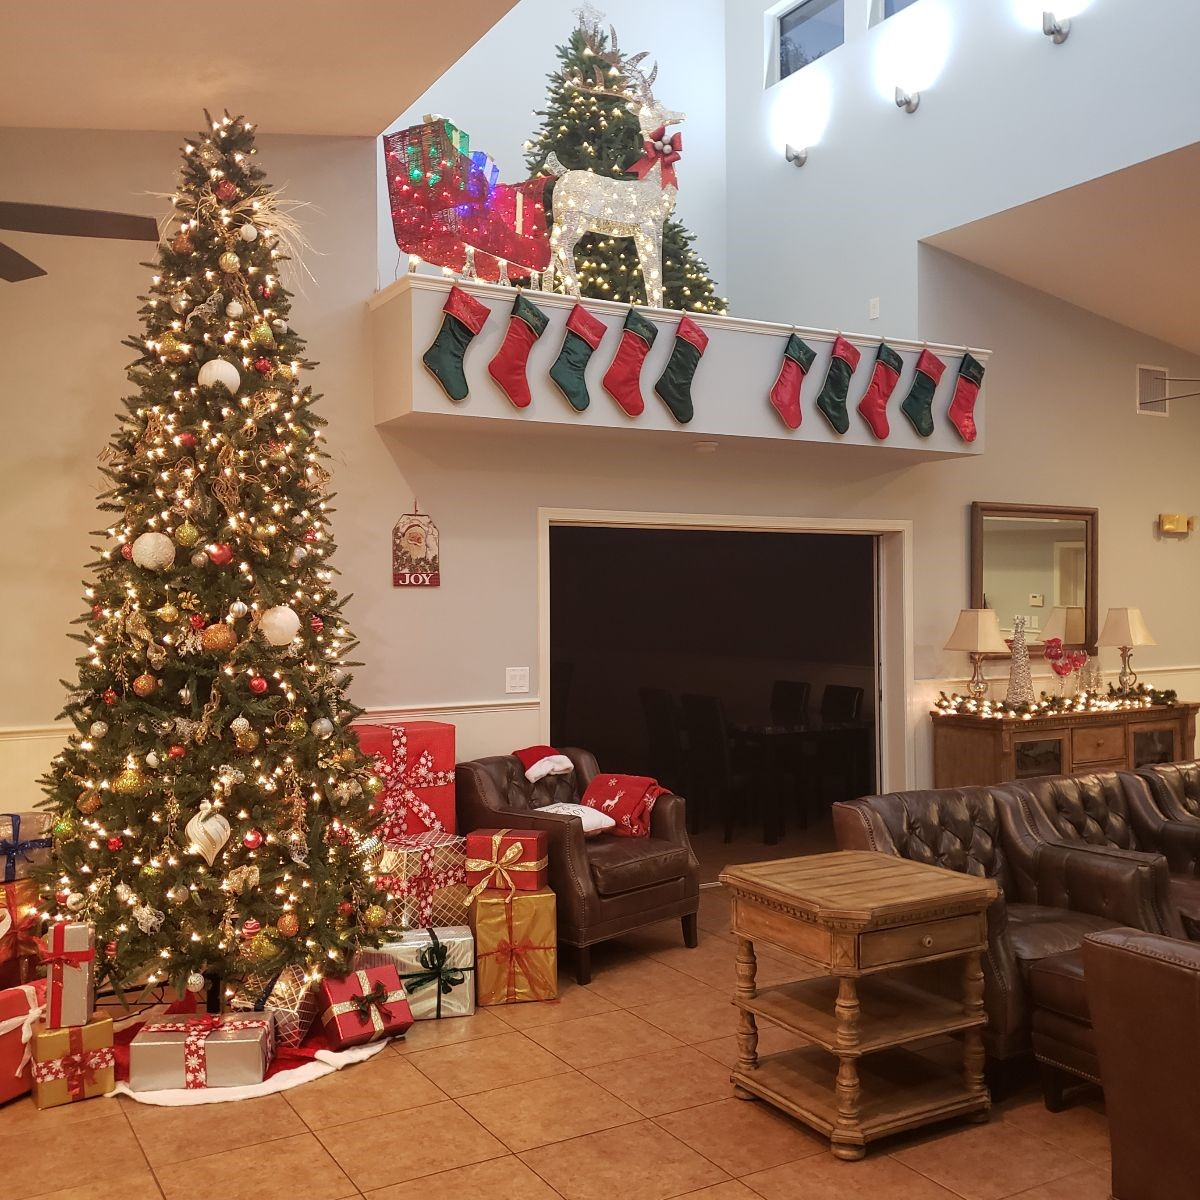 Inside Clubhouse with Christmas Decorations